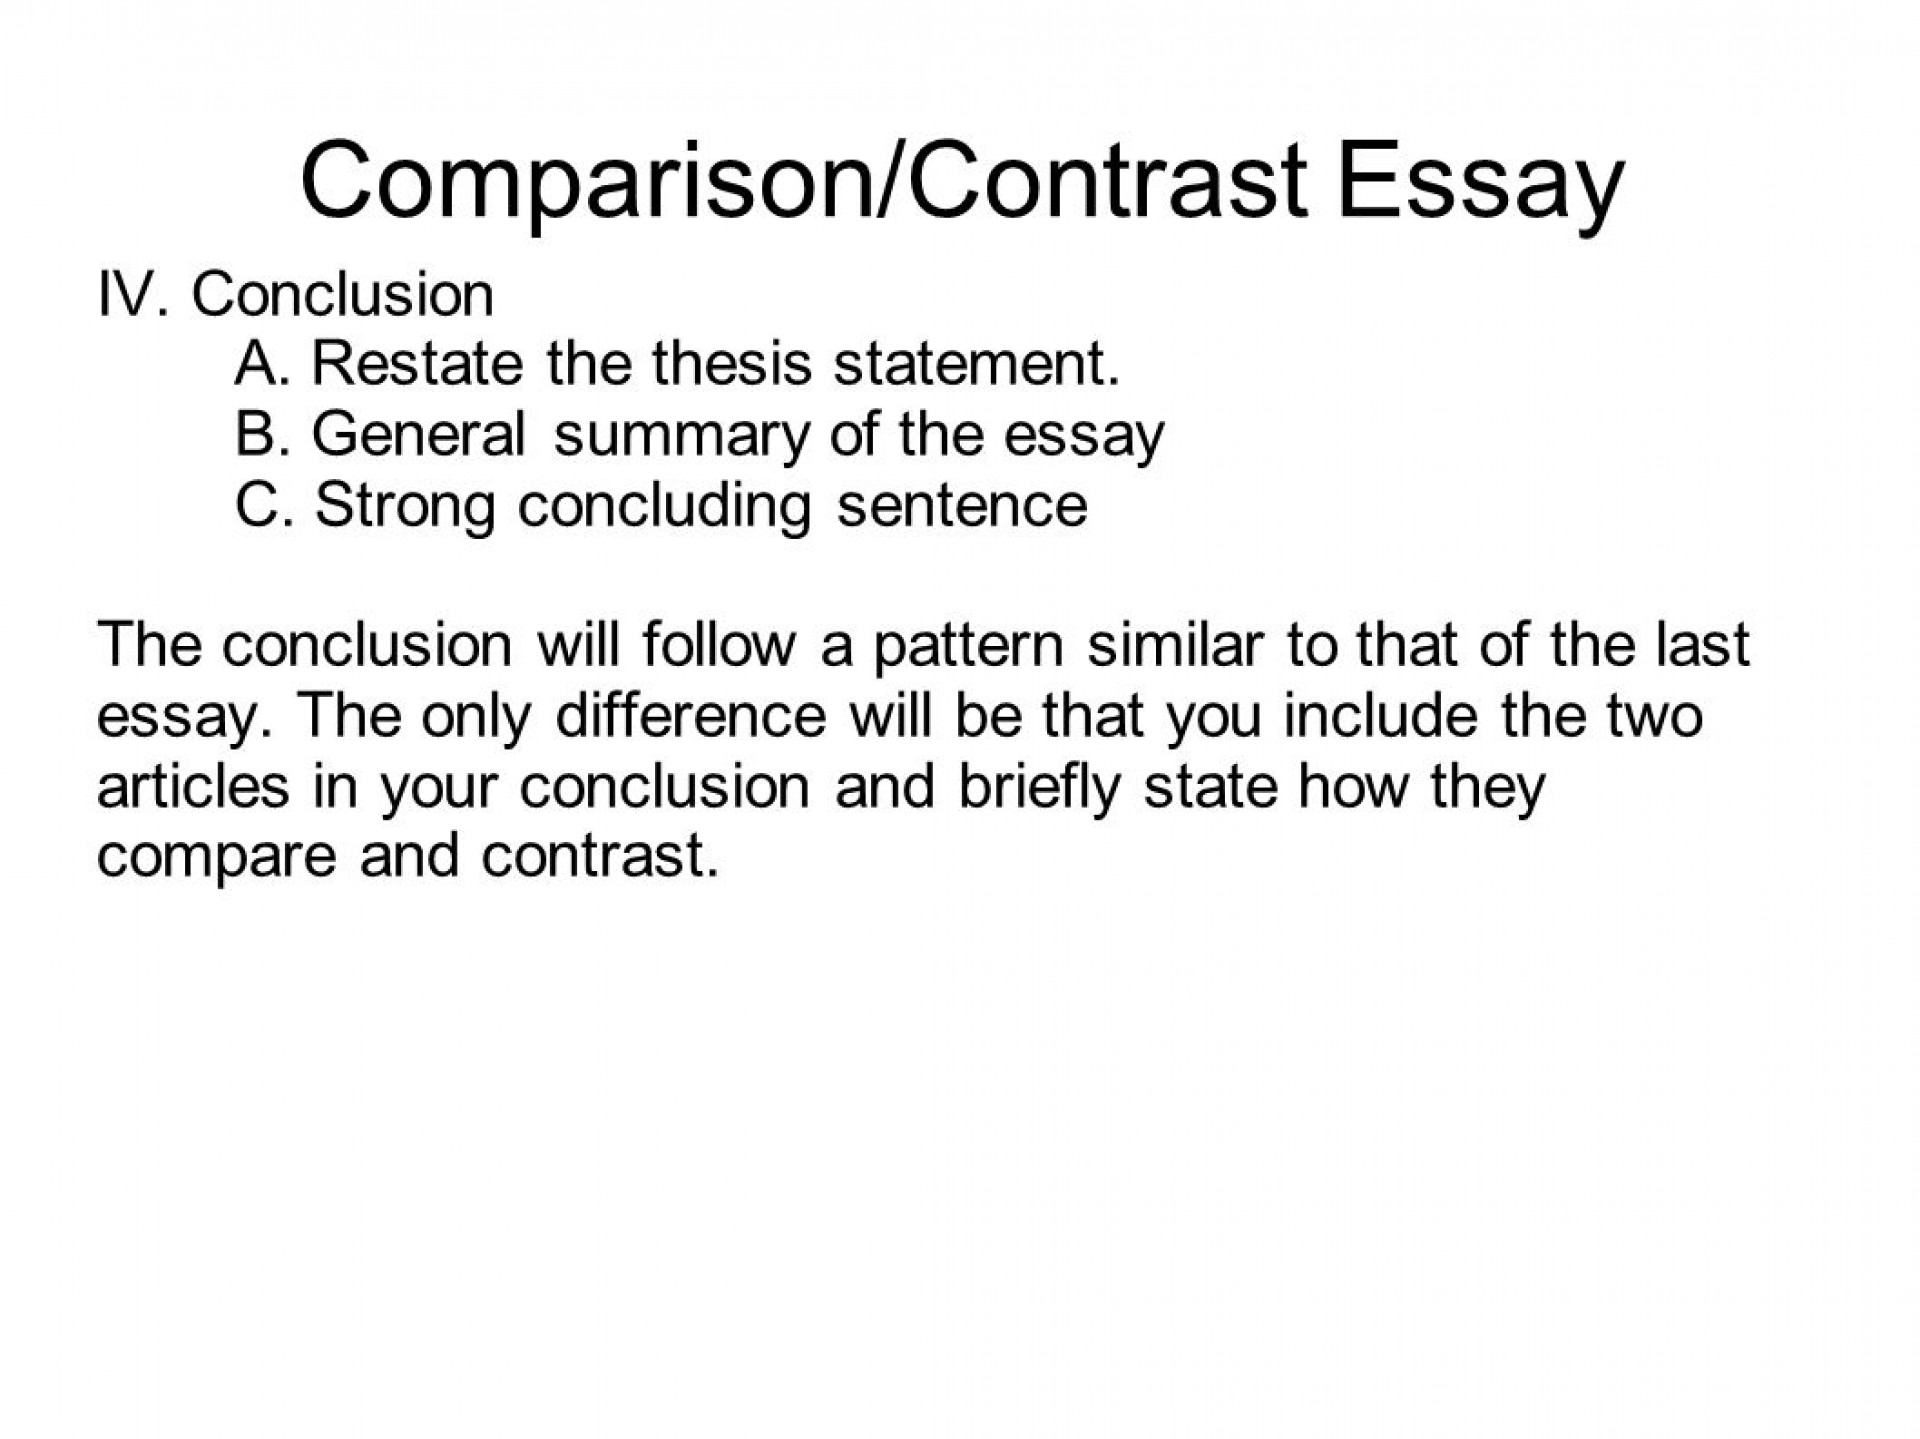 010 Good Compare And Contrast Essays Conclusion Paragraph For How To Write An Essay Sli Analysis Argumentative Art Academic Informative Sentence Opinion Unbelievable The Great Gatsby Tom Examples Middle School Movie Book 1920